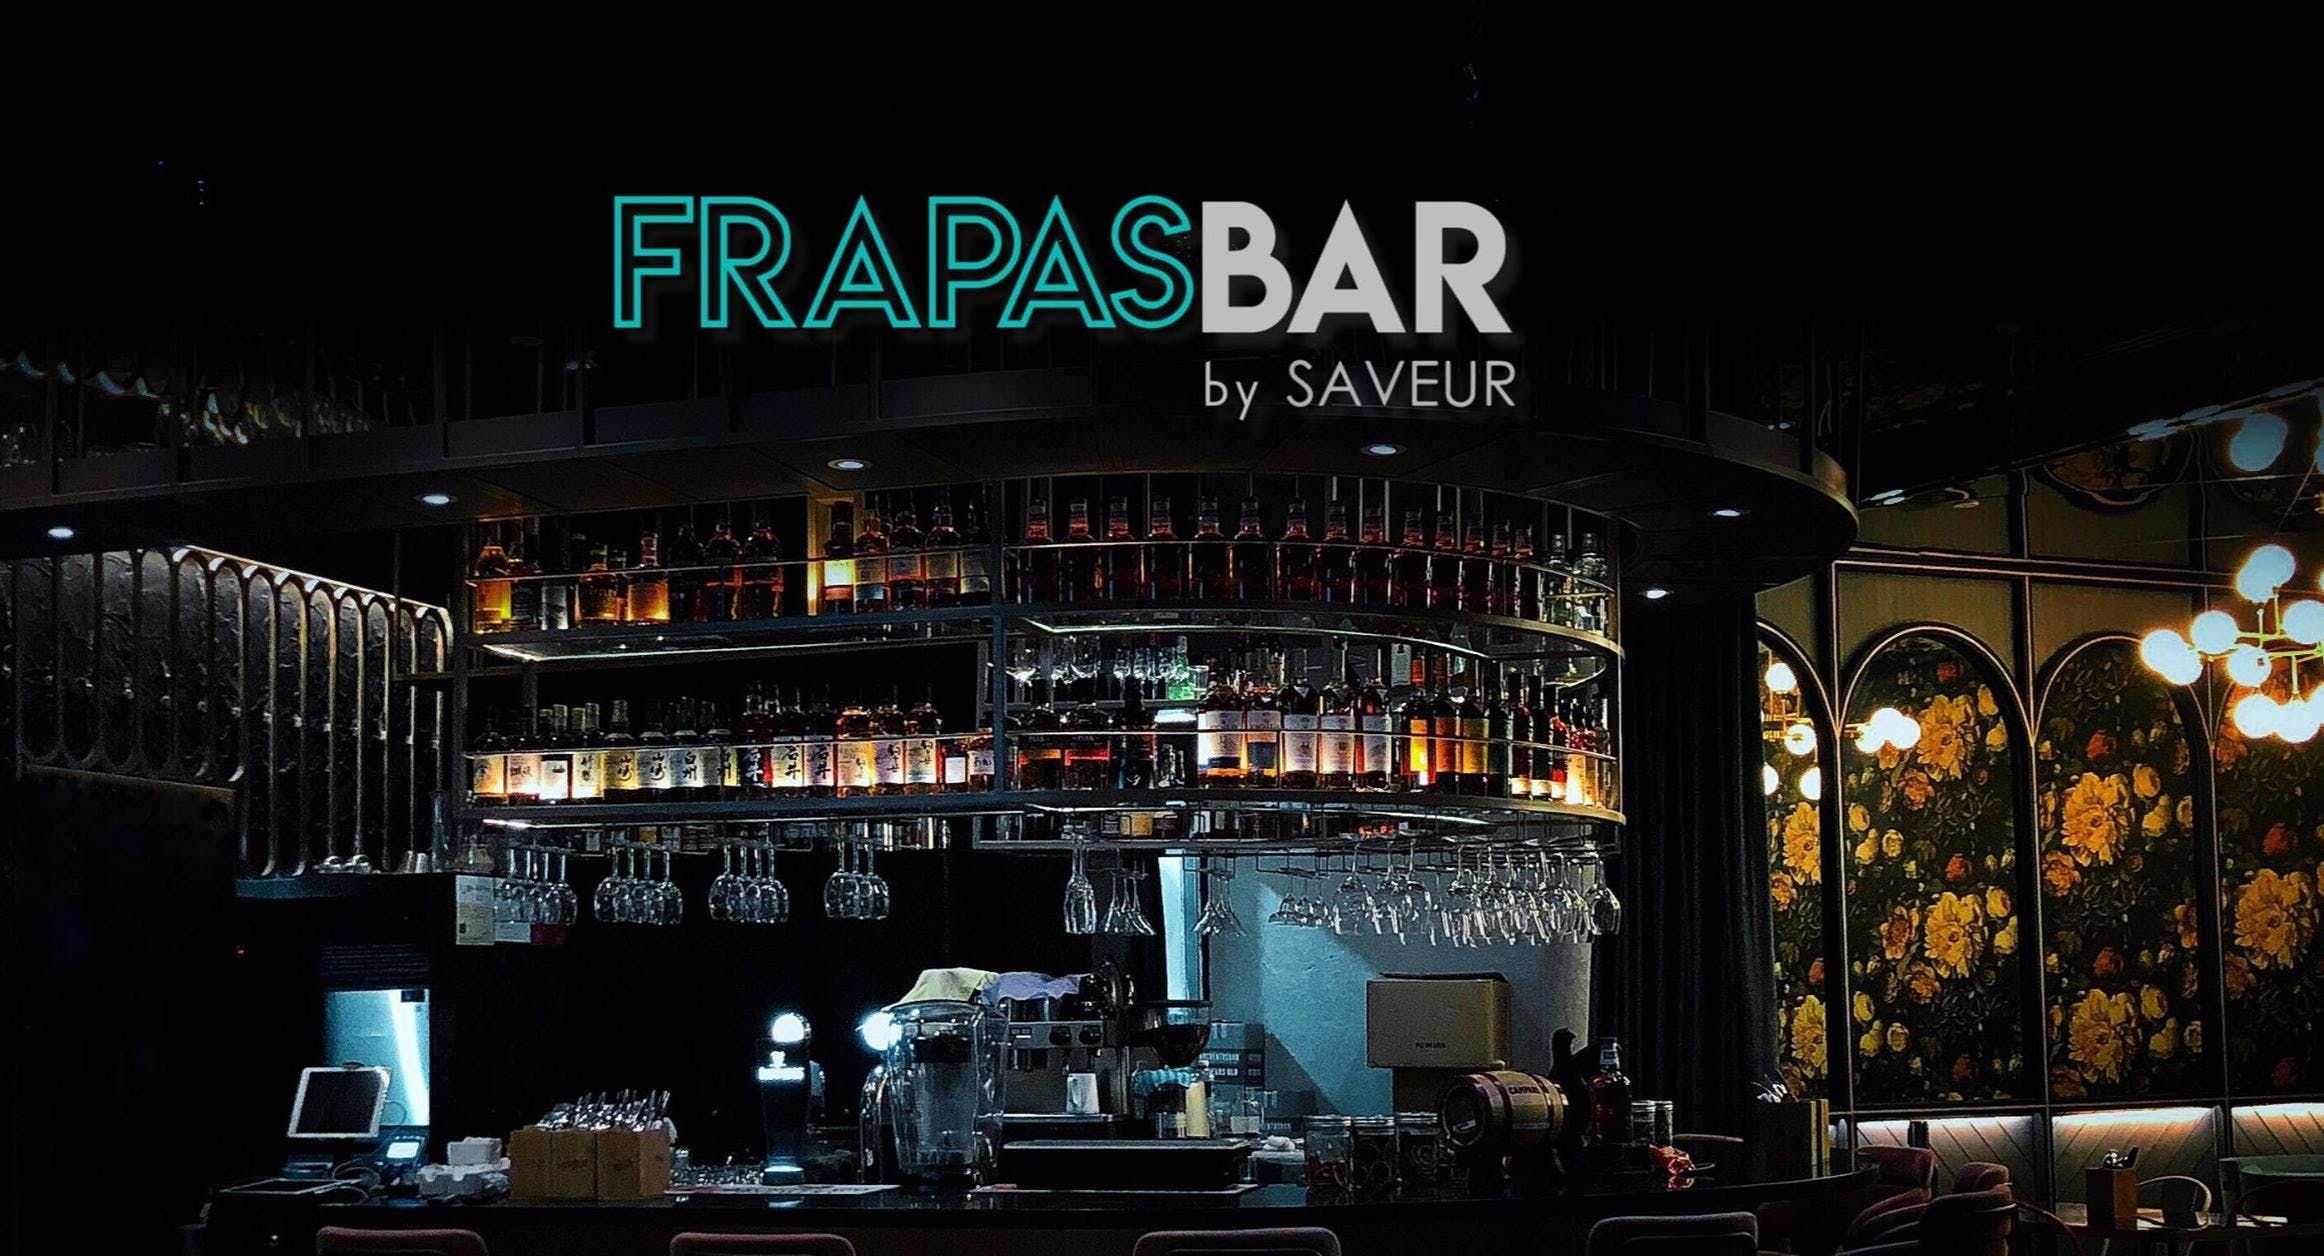 Frapas Bar by Saveur - Century Square Singapore image 2